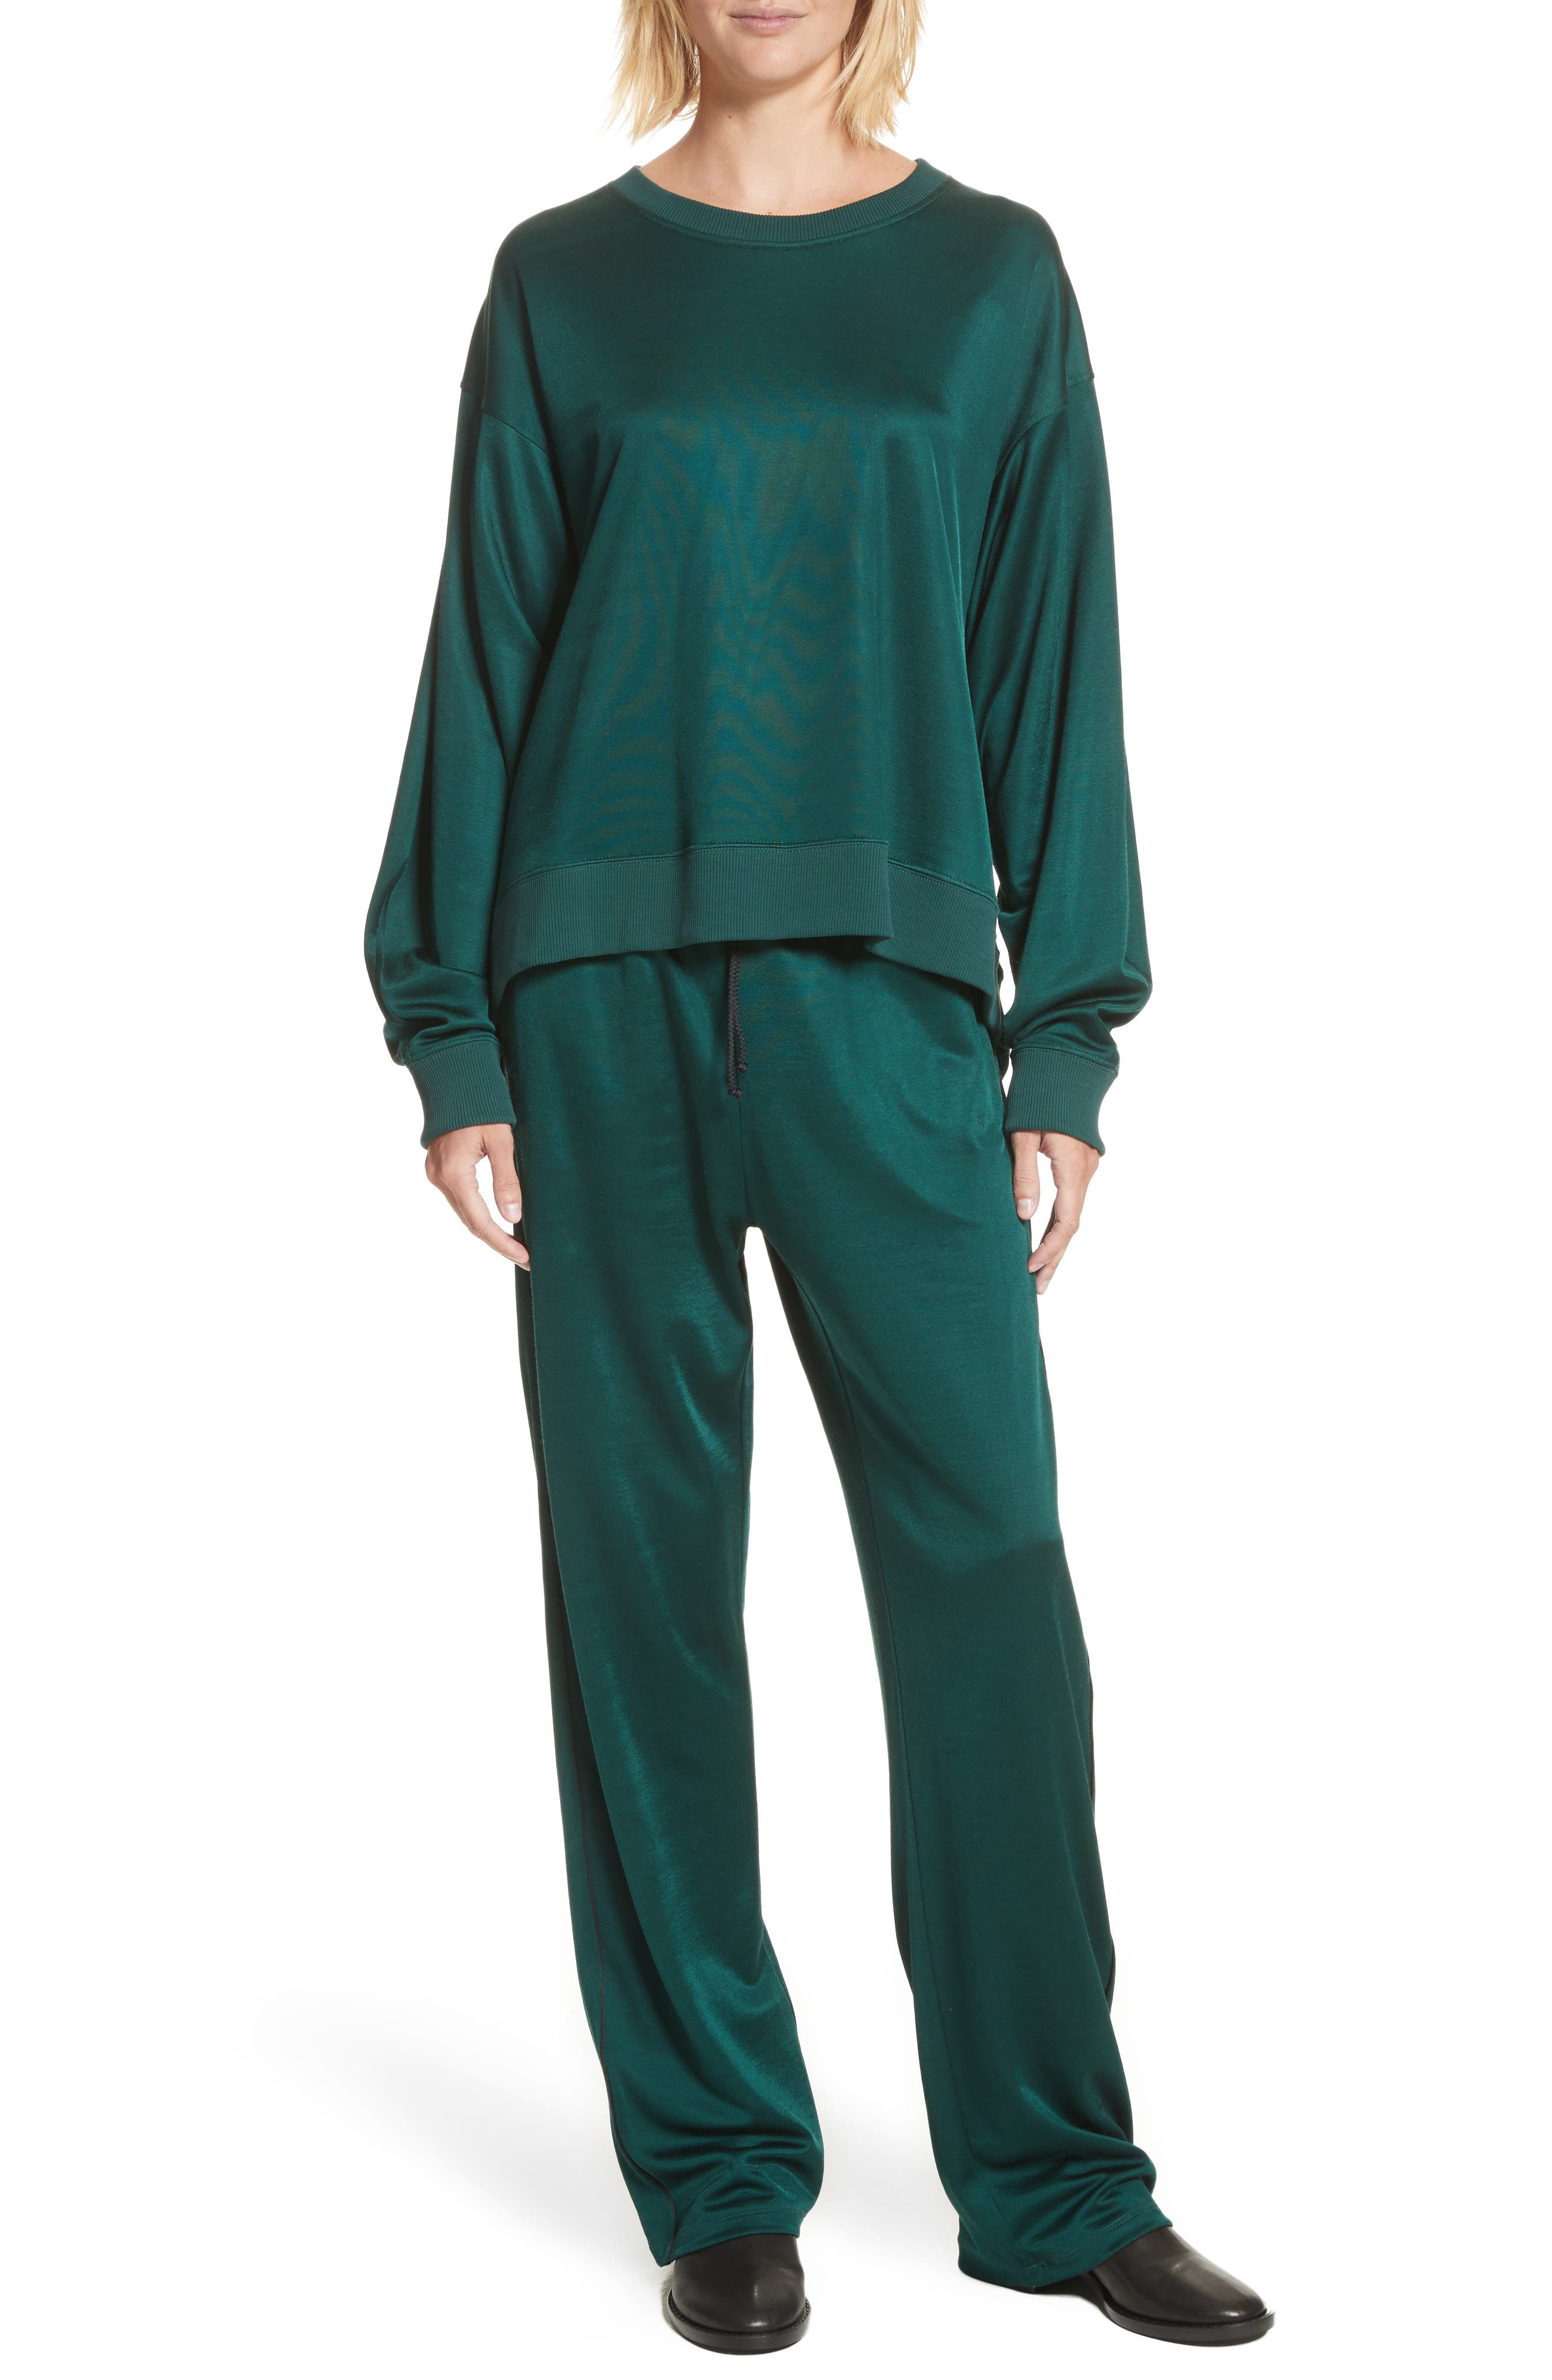 Track Suit Pullover,                             Alternate thumbnail 6, color,                             304